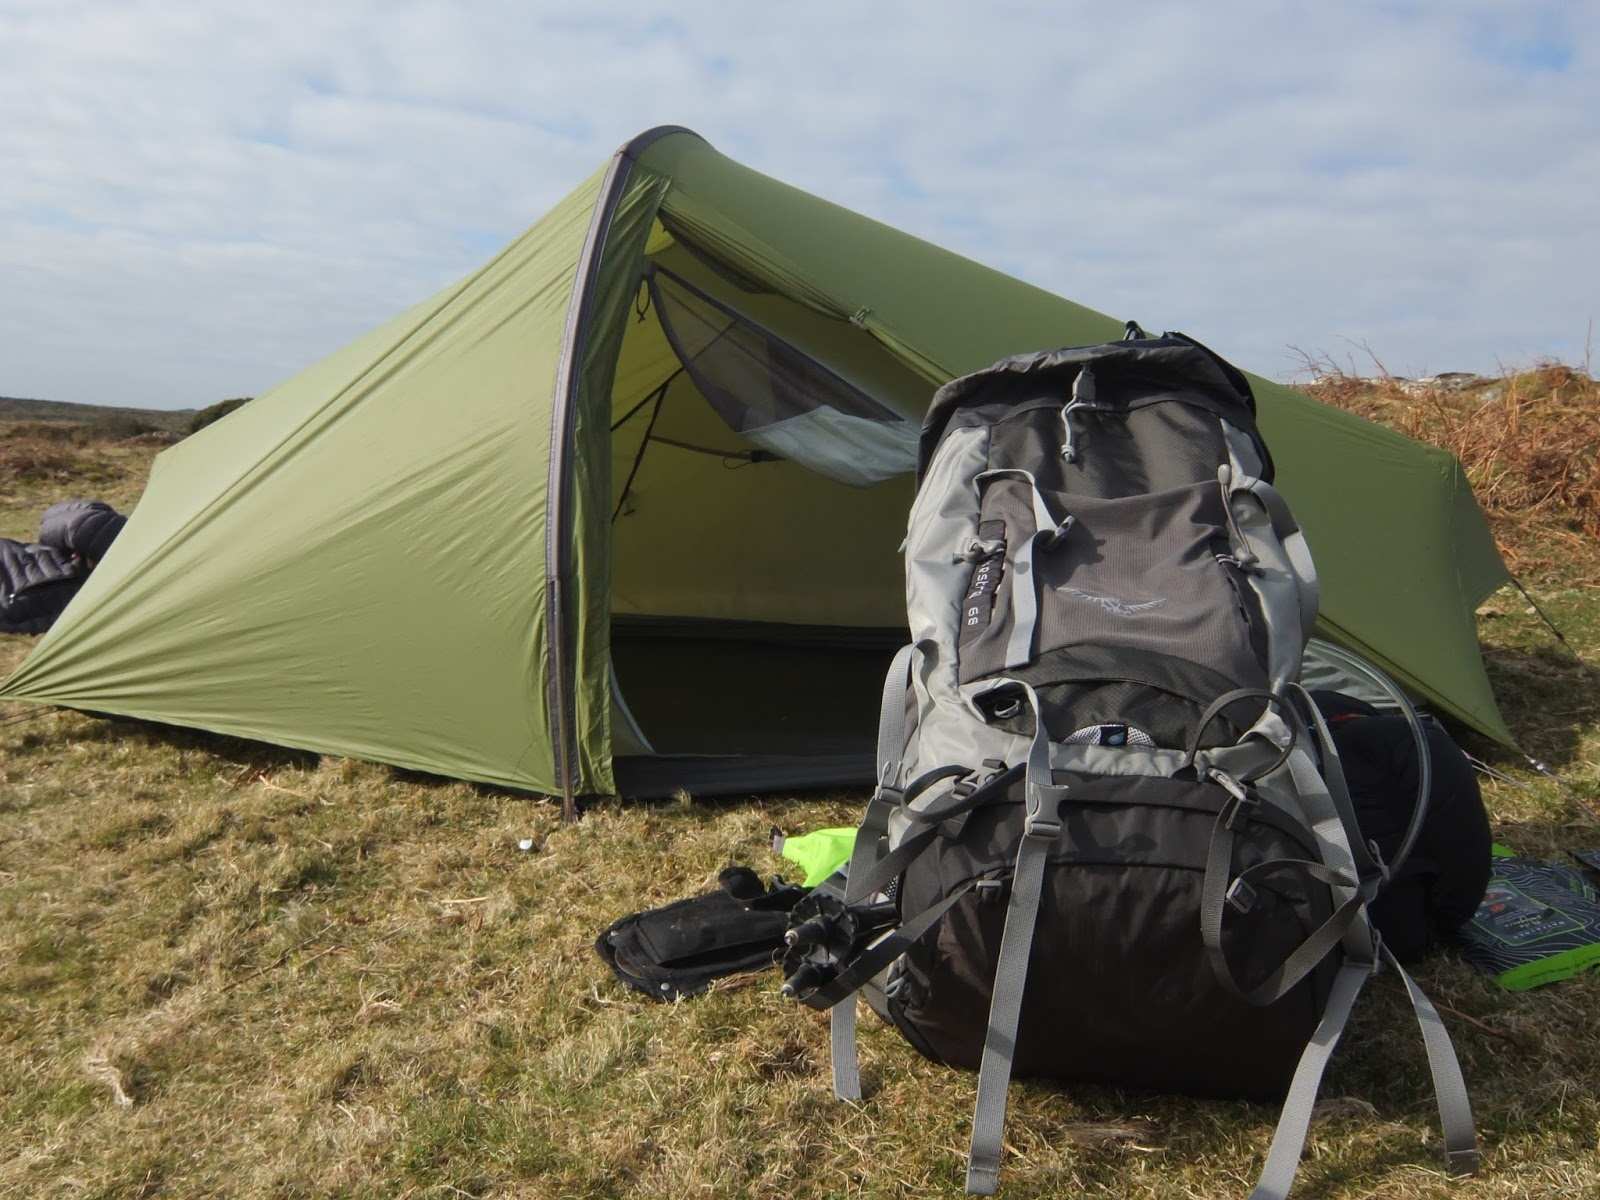 Great stuff from Osprey perhaps the best entry level backpacking tent? & Outdoor Equipment | News + Reviews: Review: Osprey Kestrel 68 Rucksack